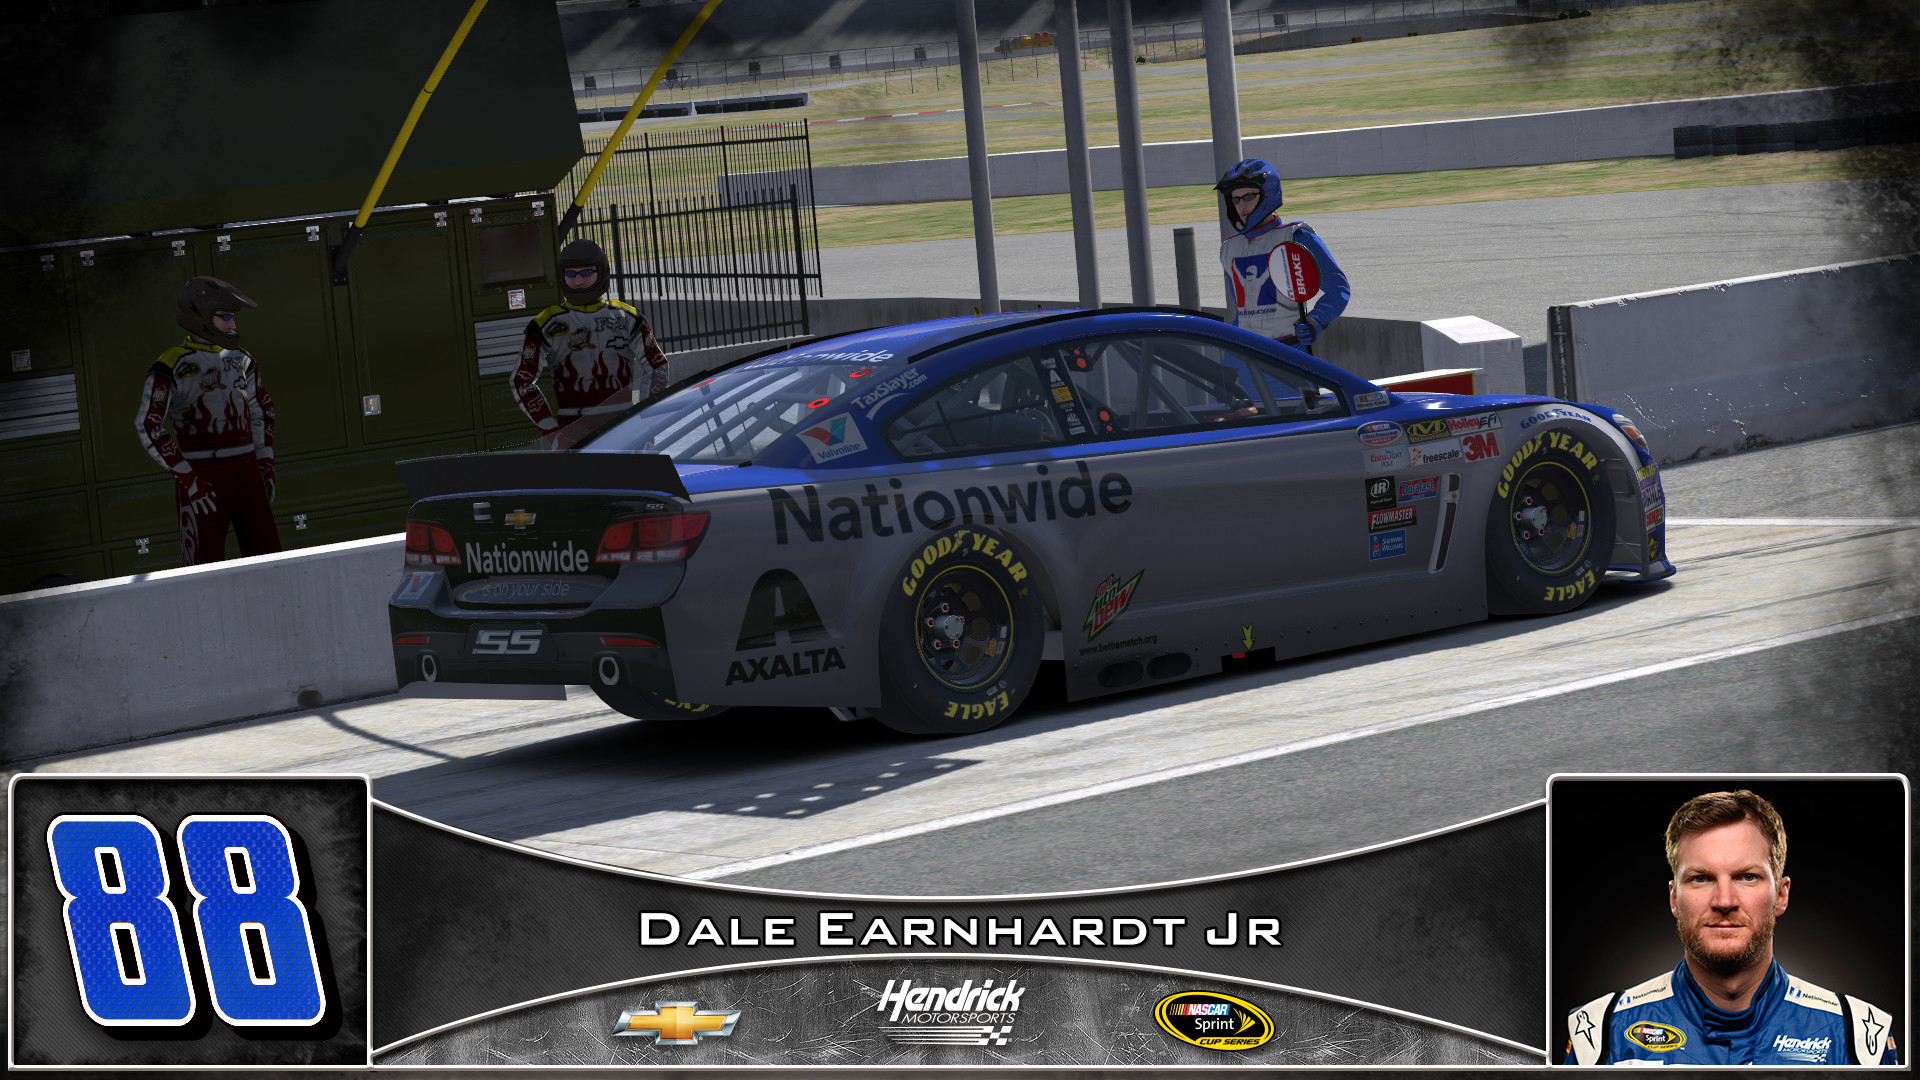 #88 Dale Earnhardt Jr Nationwide 2016 by Udo Washeim – Trading Paints